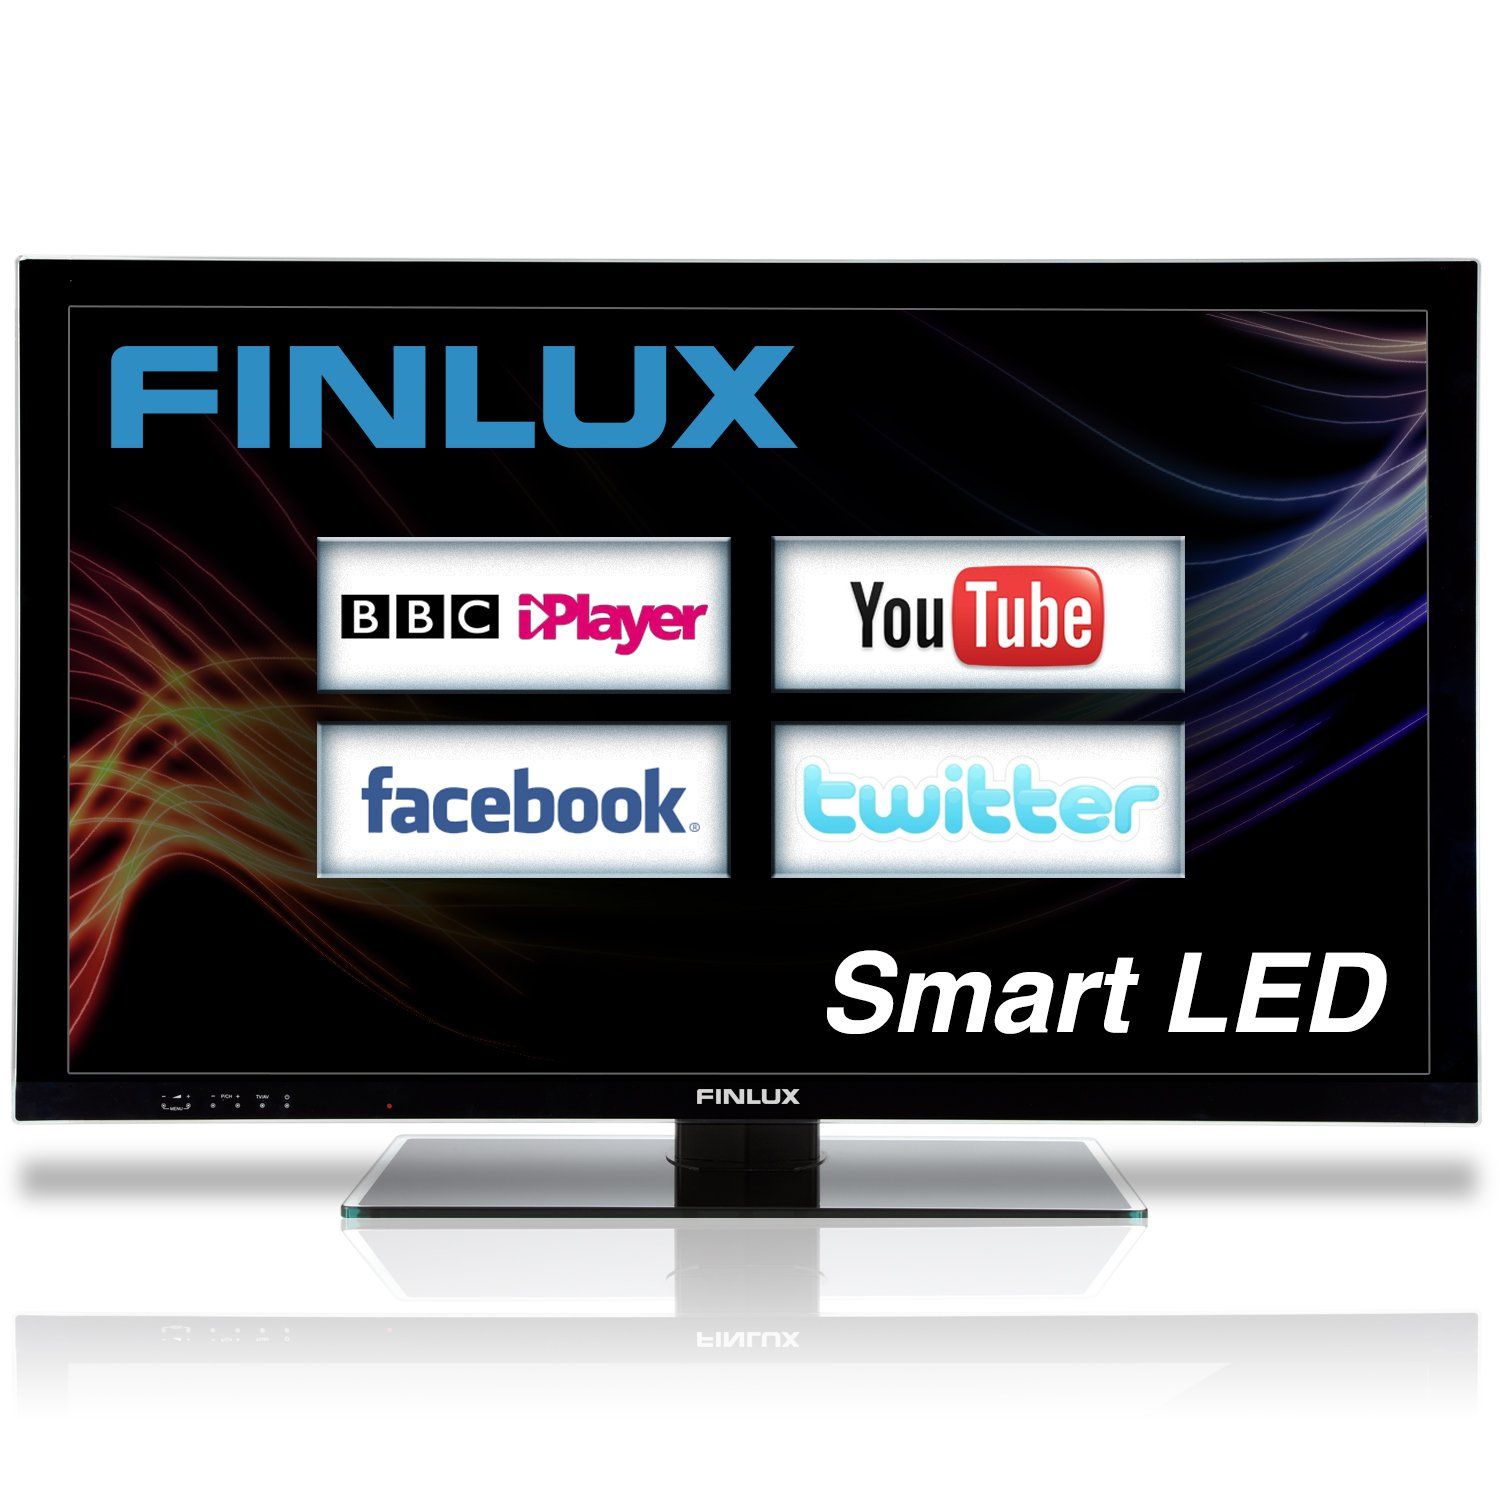 Finlux 40S8070-T 40-inch Widescreen Full HD 1080p Frameless Smart LED TV  with Freeview HD - Black